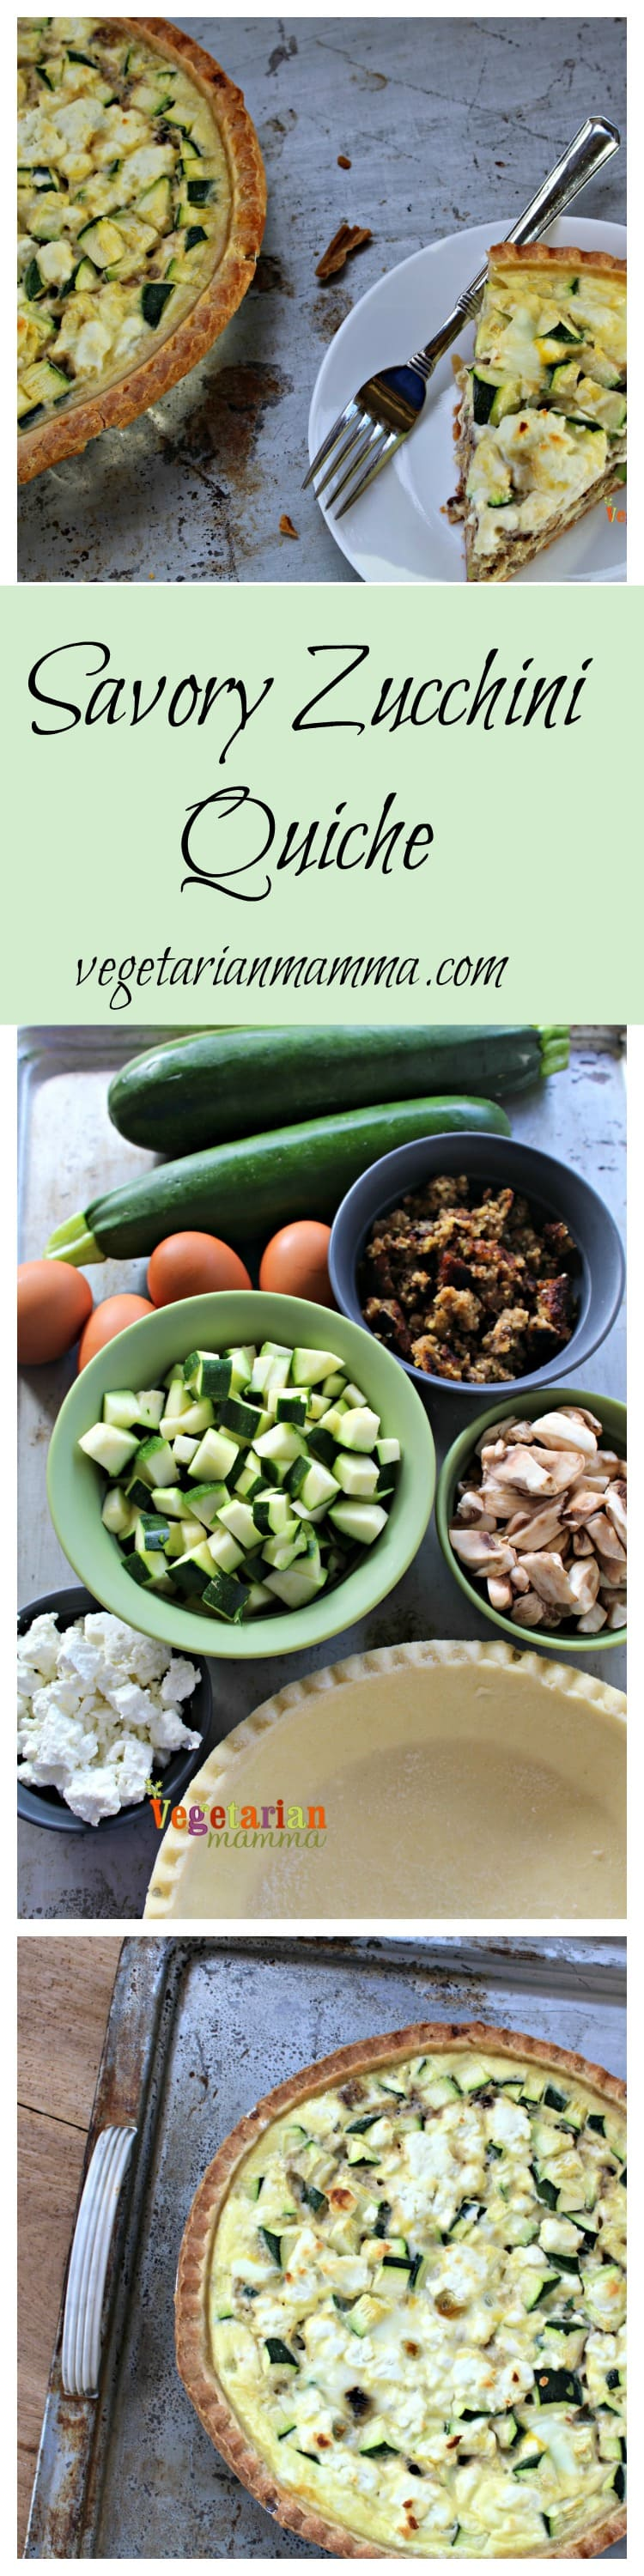 Gluten Free and Vegetarian Zucchini Quiche